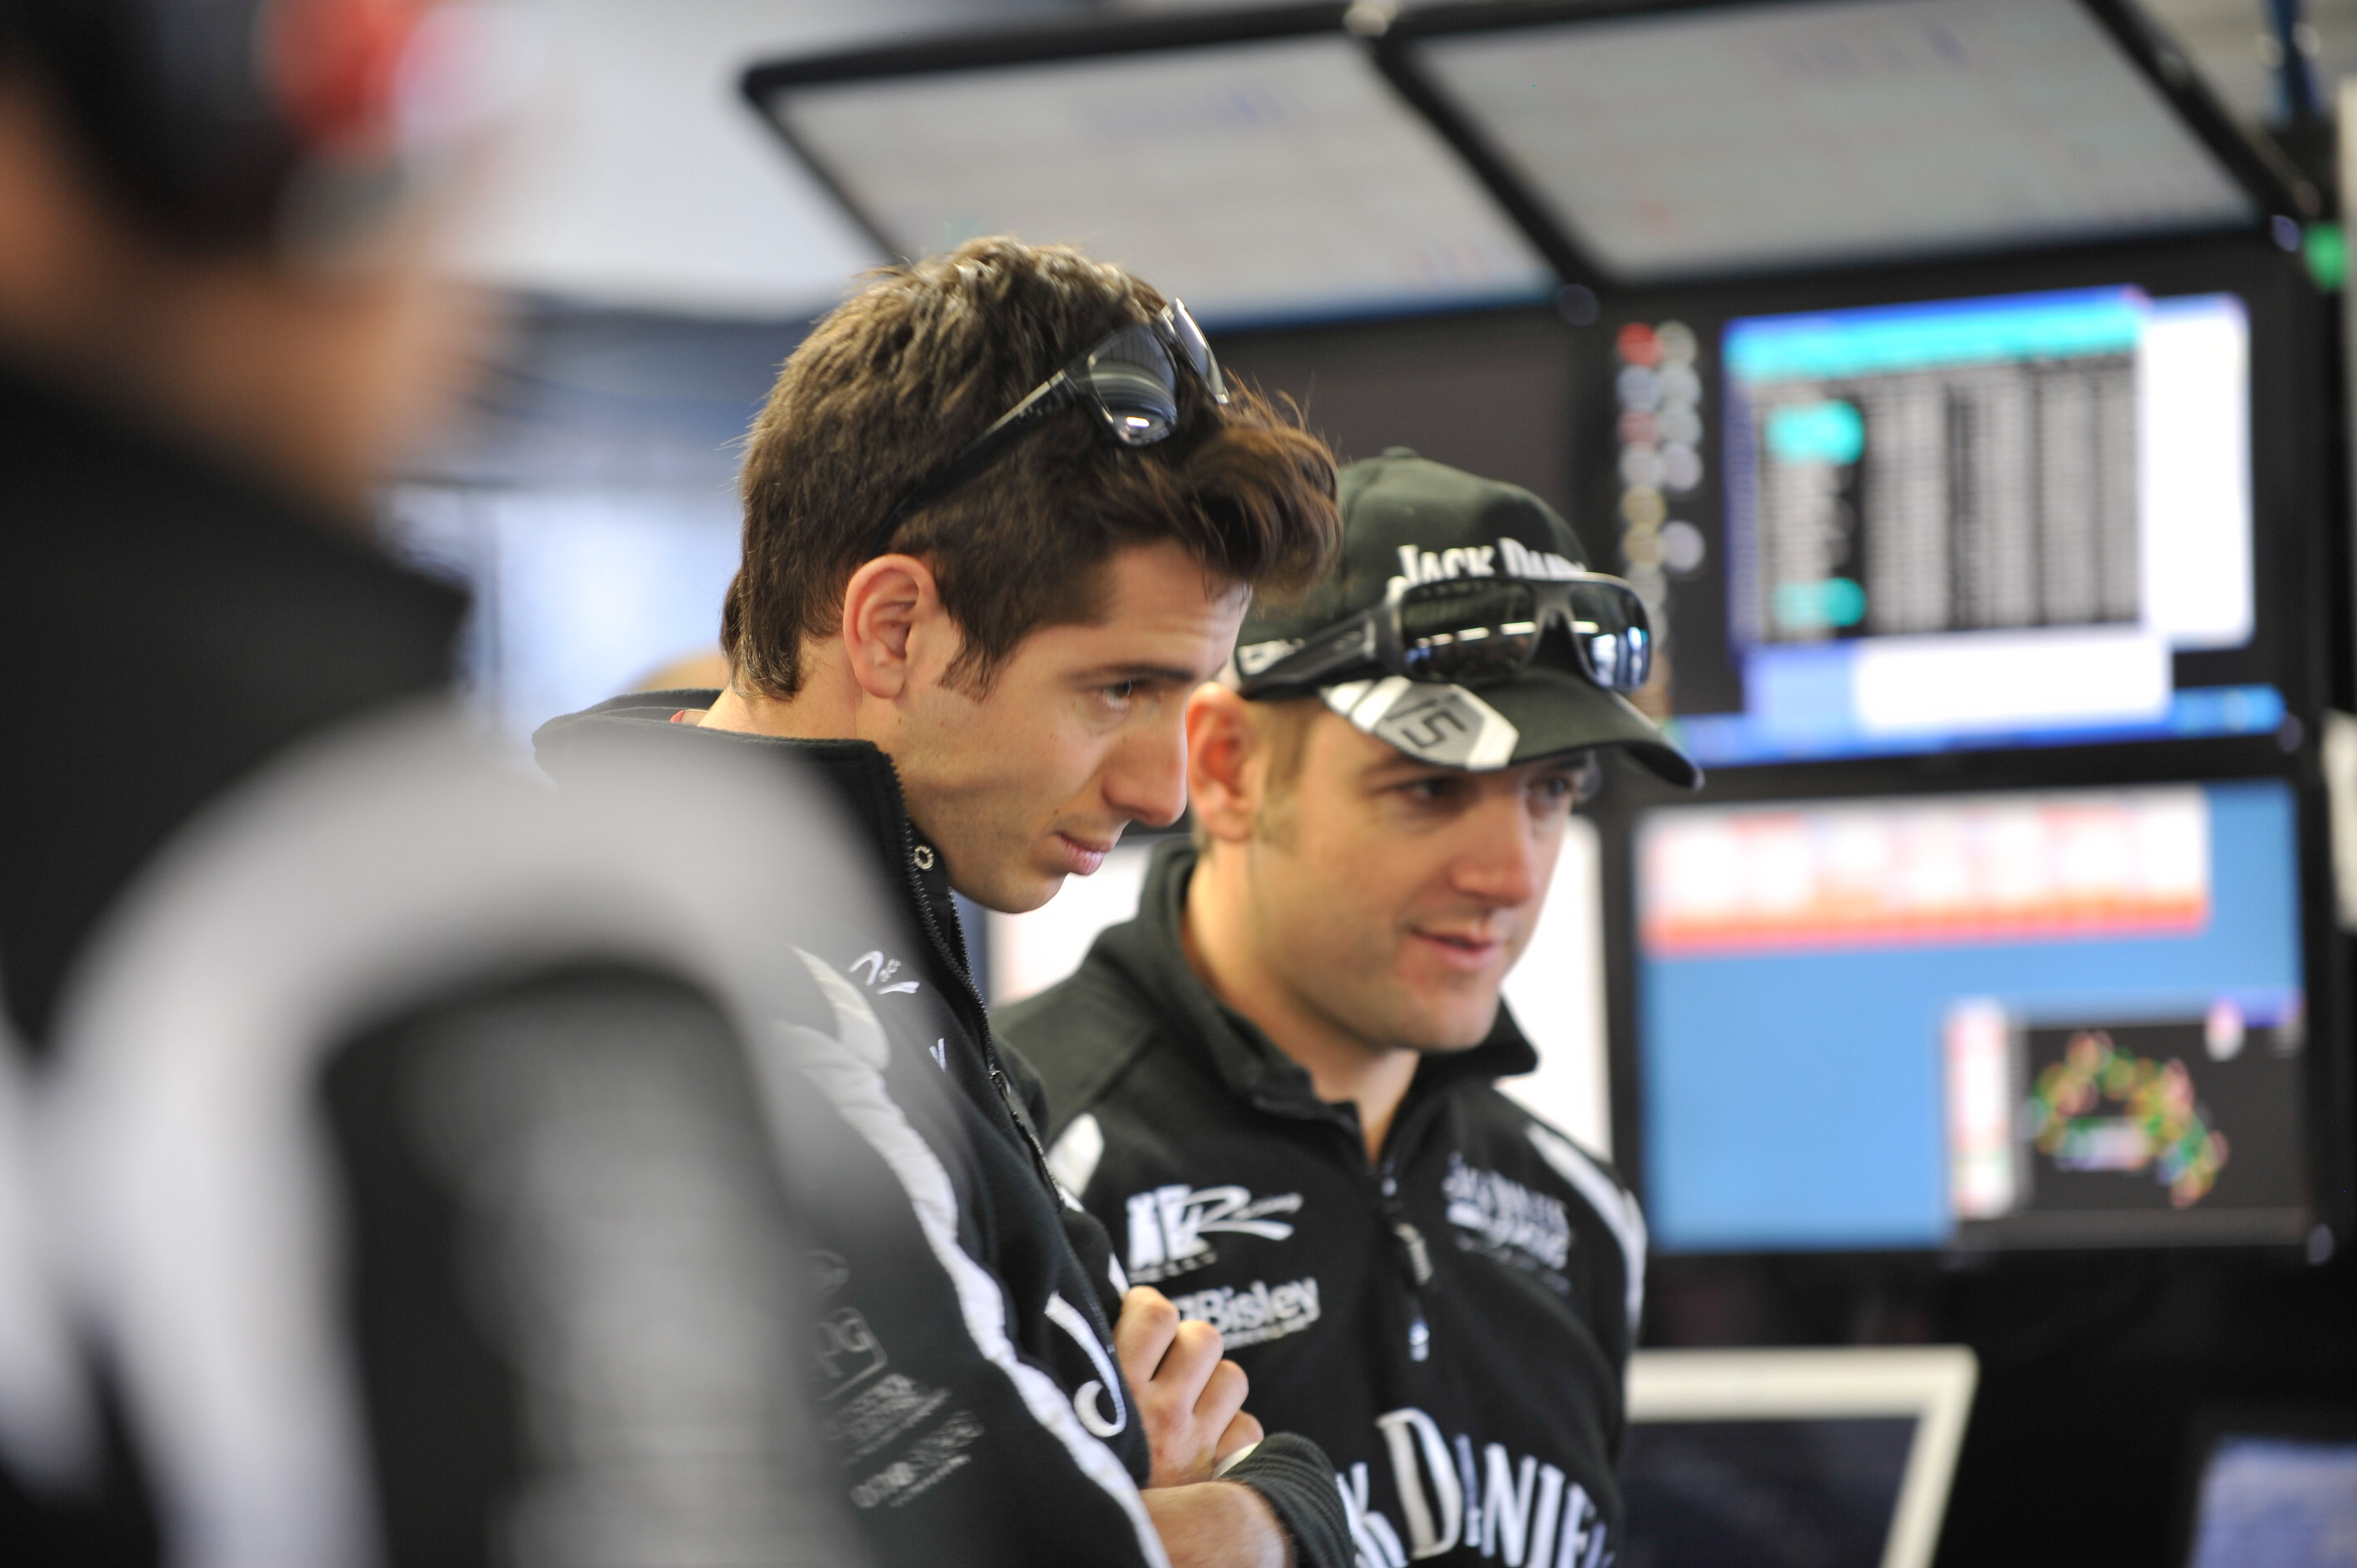 Rick Kelly and Todd Kelly of the Jack Daniel's Racing team during the Phillip Island 300, event 05 of the 2012 V8 Supercars Championship at the Phillip Island Grand Prix Circuit, Phillip Island, Victoria, May 18, 2012.